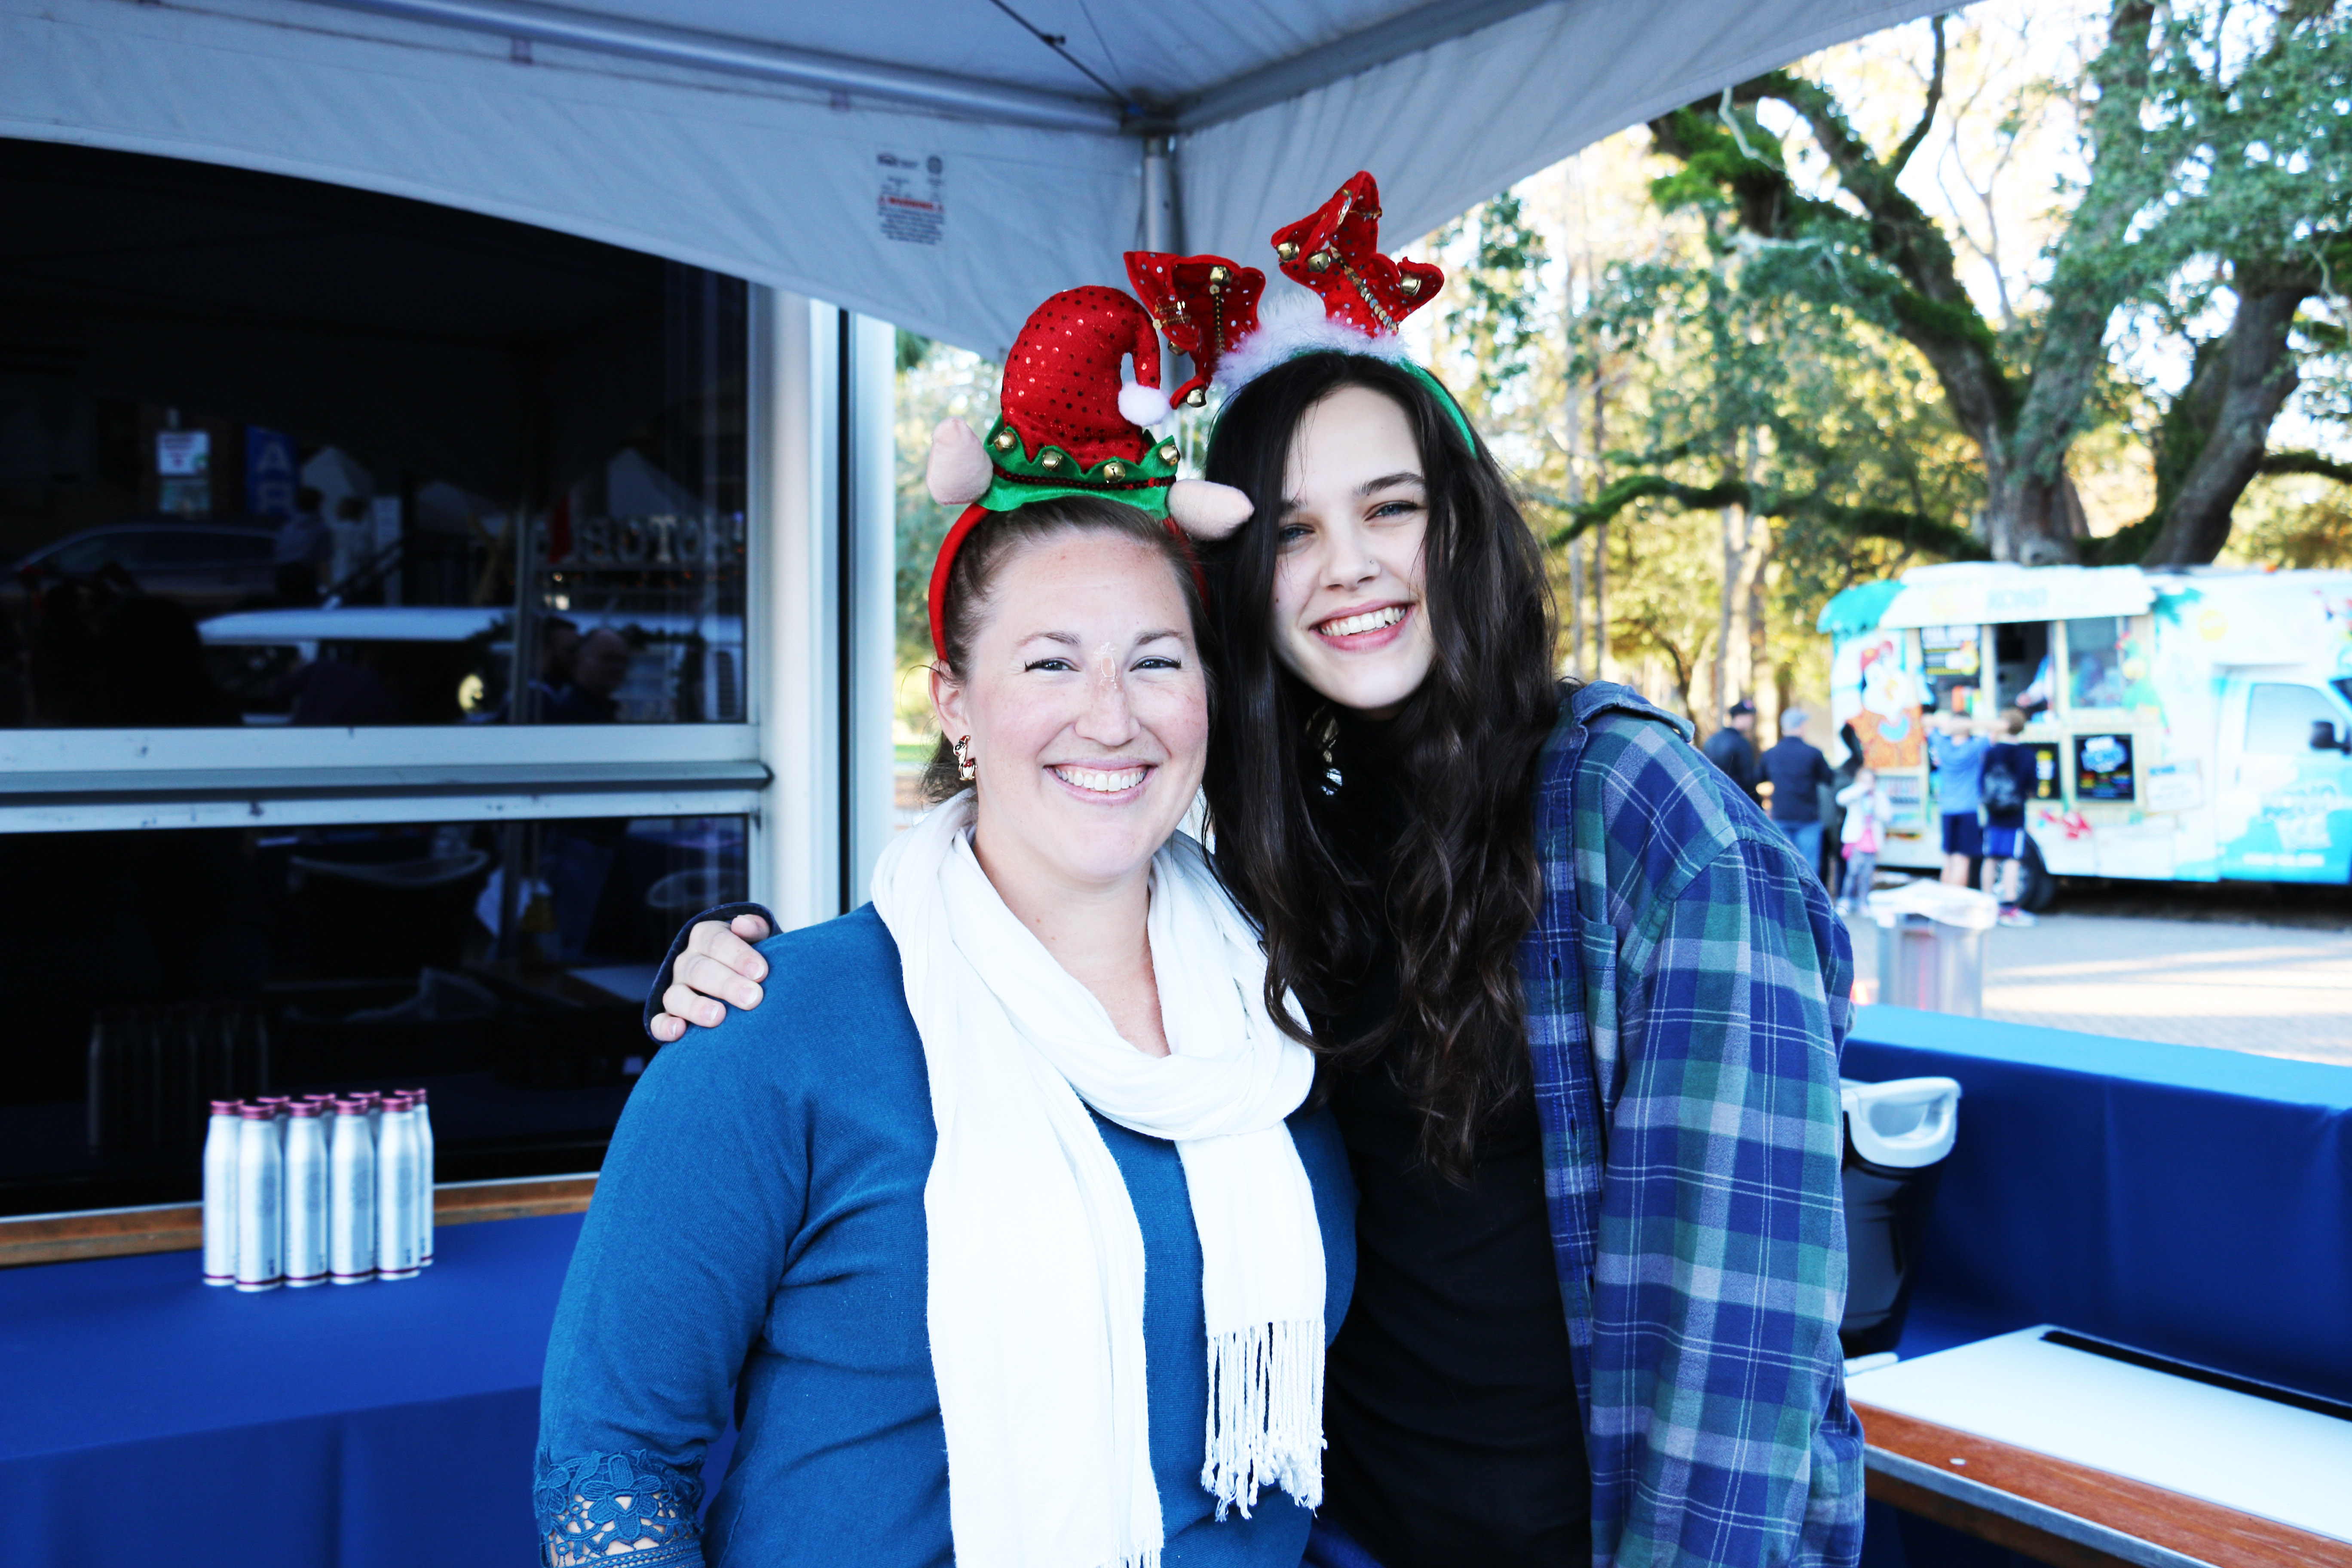 Jessica Skinner and Madeline Wood help make the festival merry and bright!